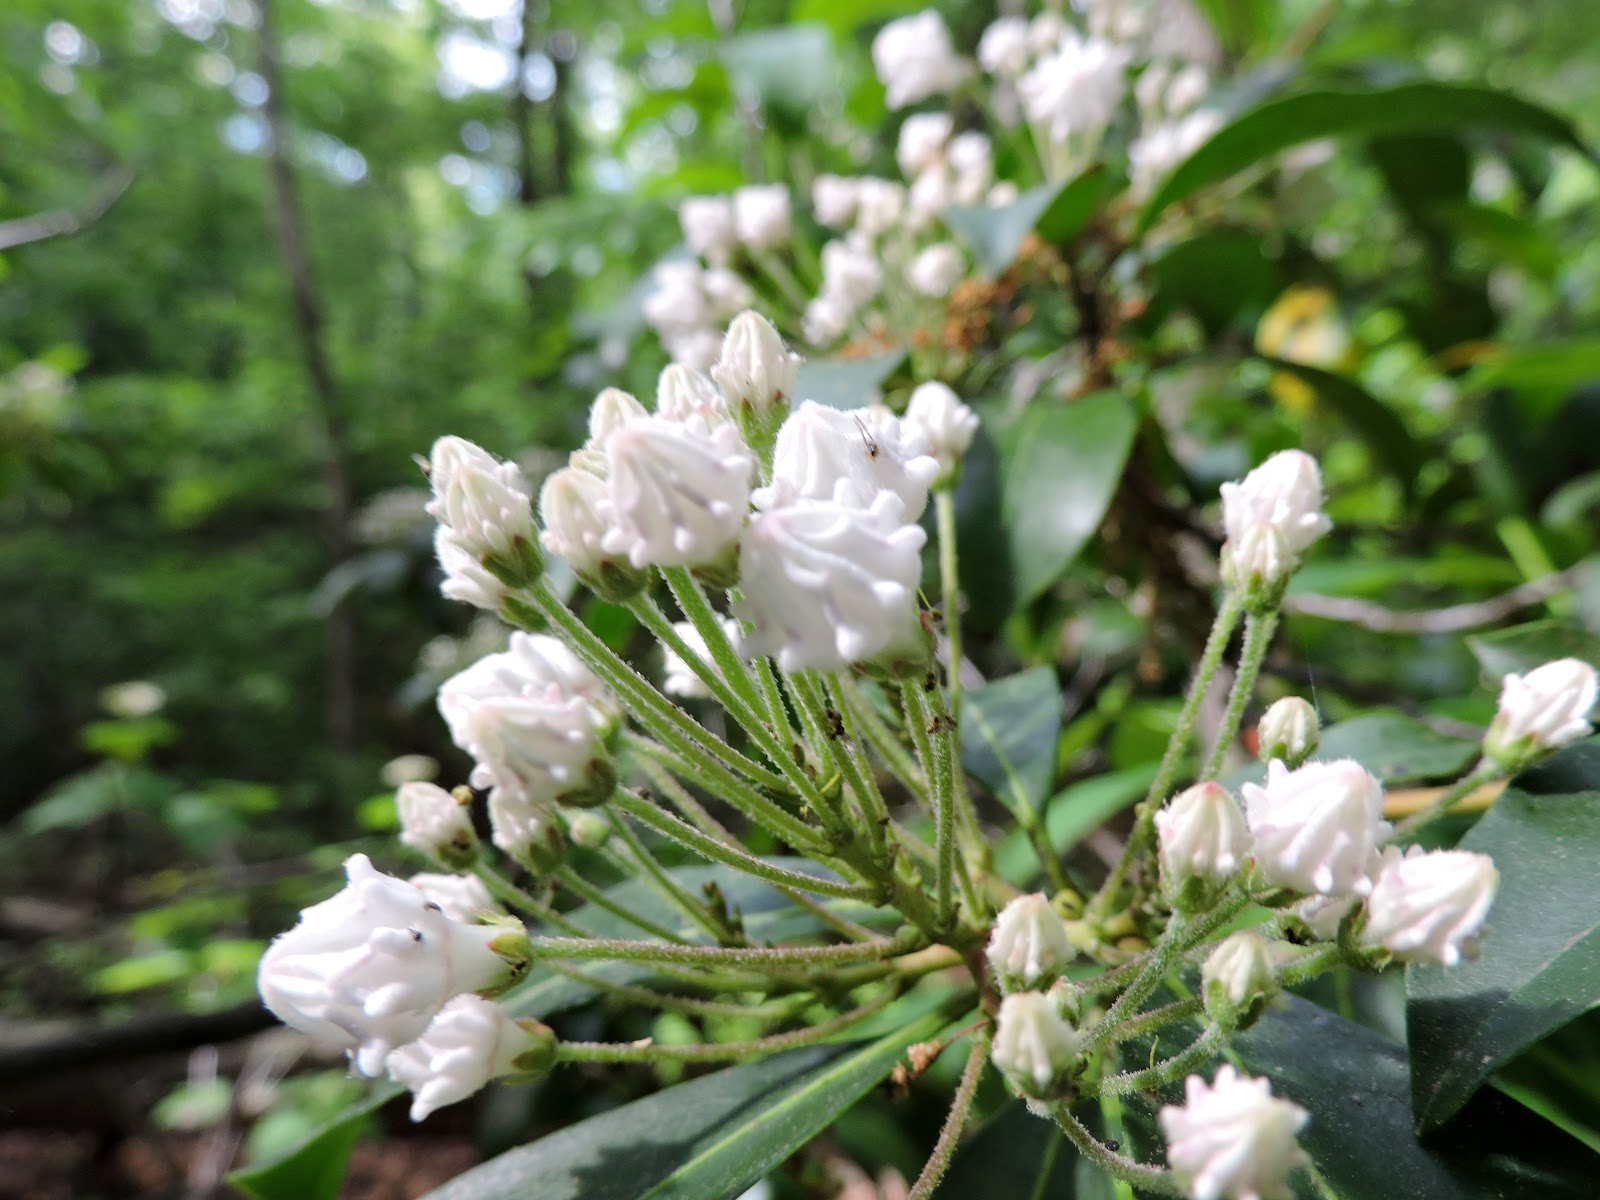 Pictures of Different White Flowers - The Spruce